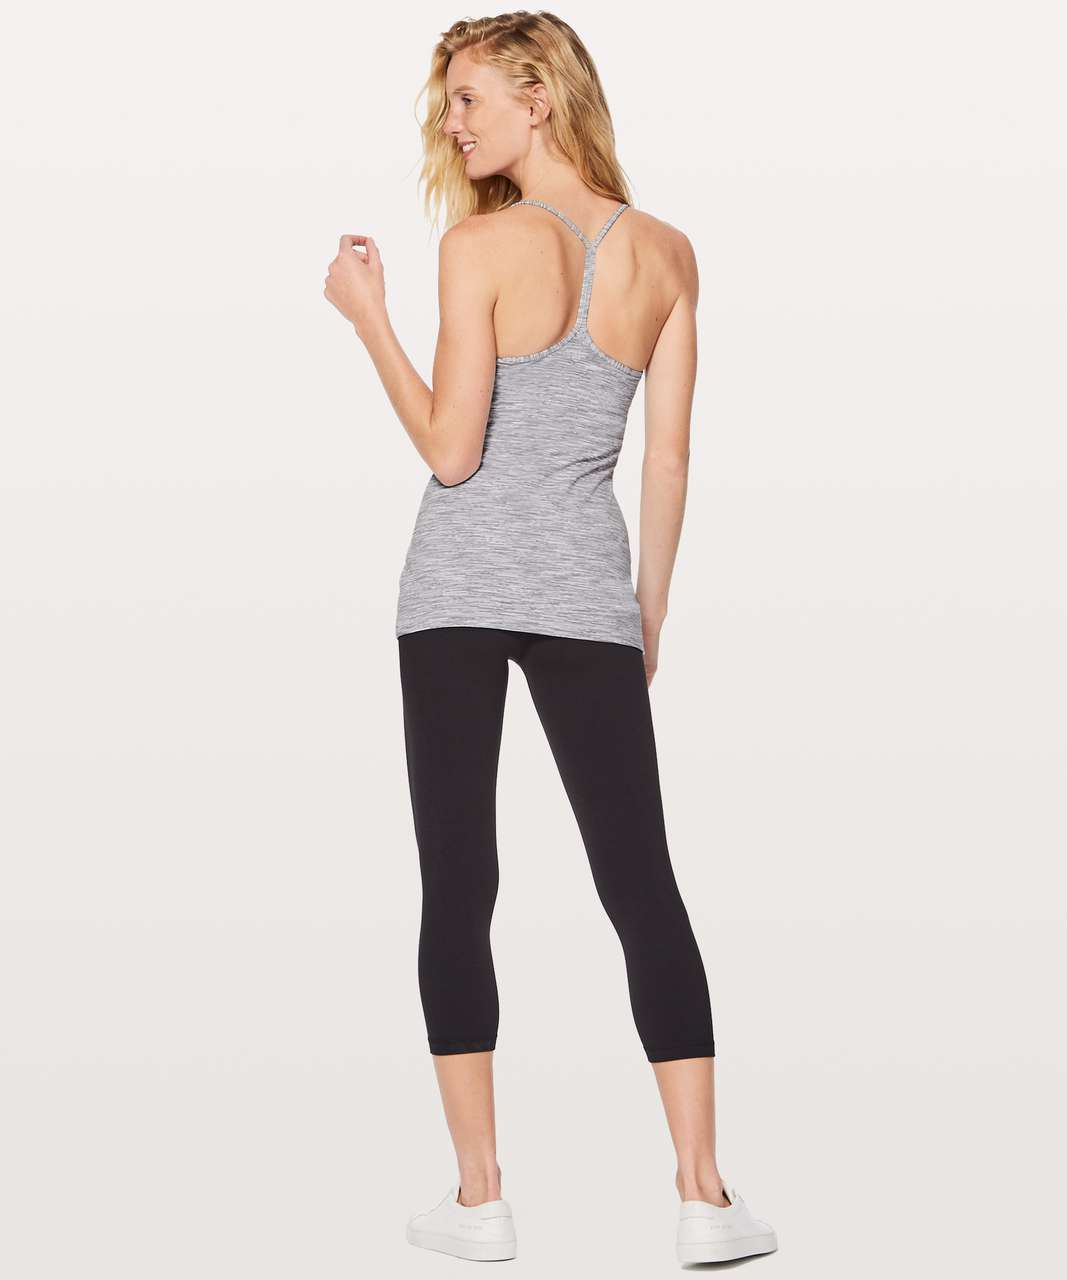 Lululemon Power Pose Tank - Wee Are From Space Ice Grey Alpine White